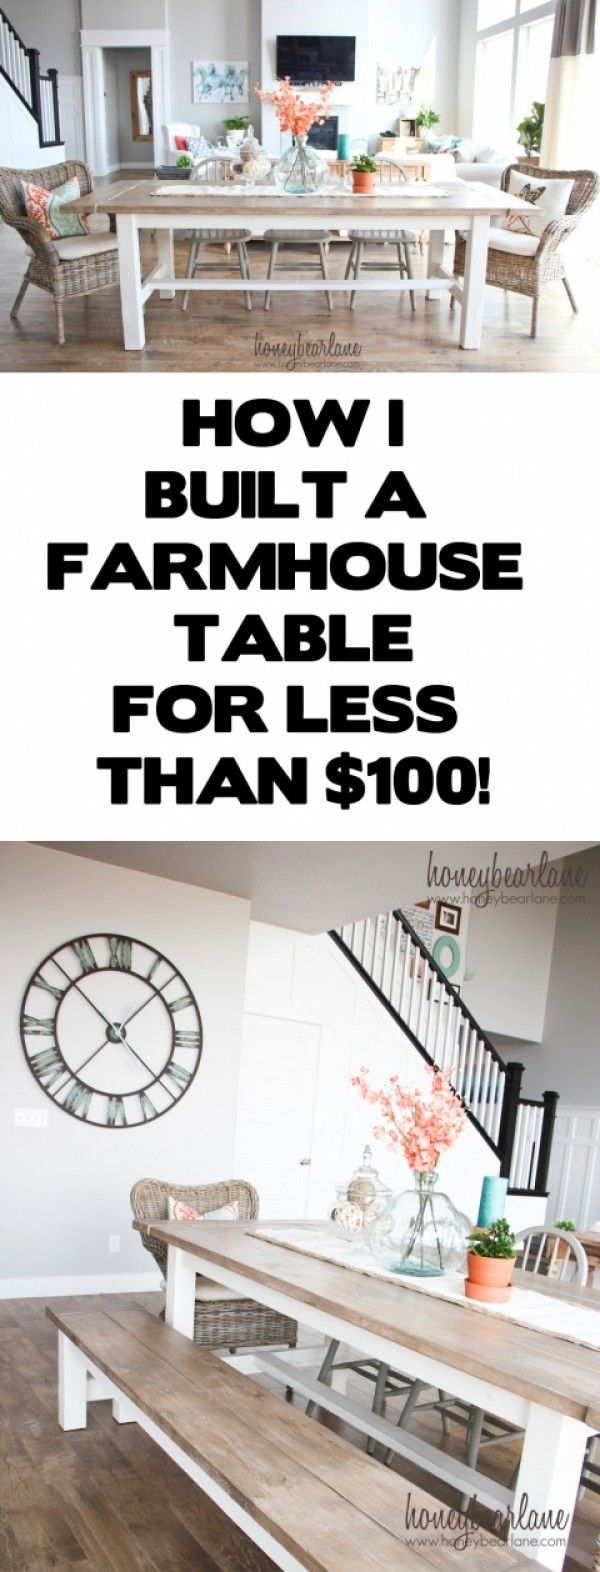 Check out the tutorial how to build a #DIY #farmhouse table for under $100 #HomeDecorIdeas @istandarddesign